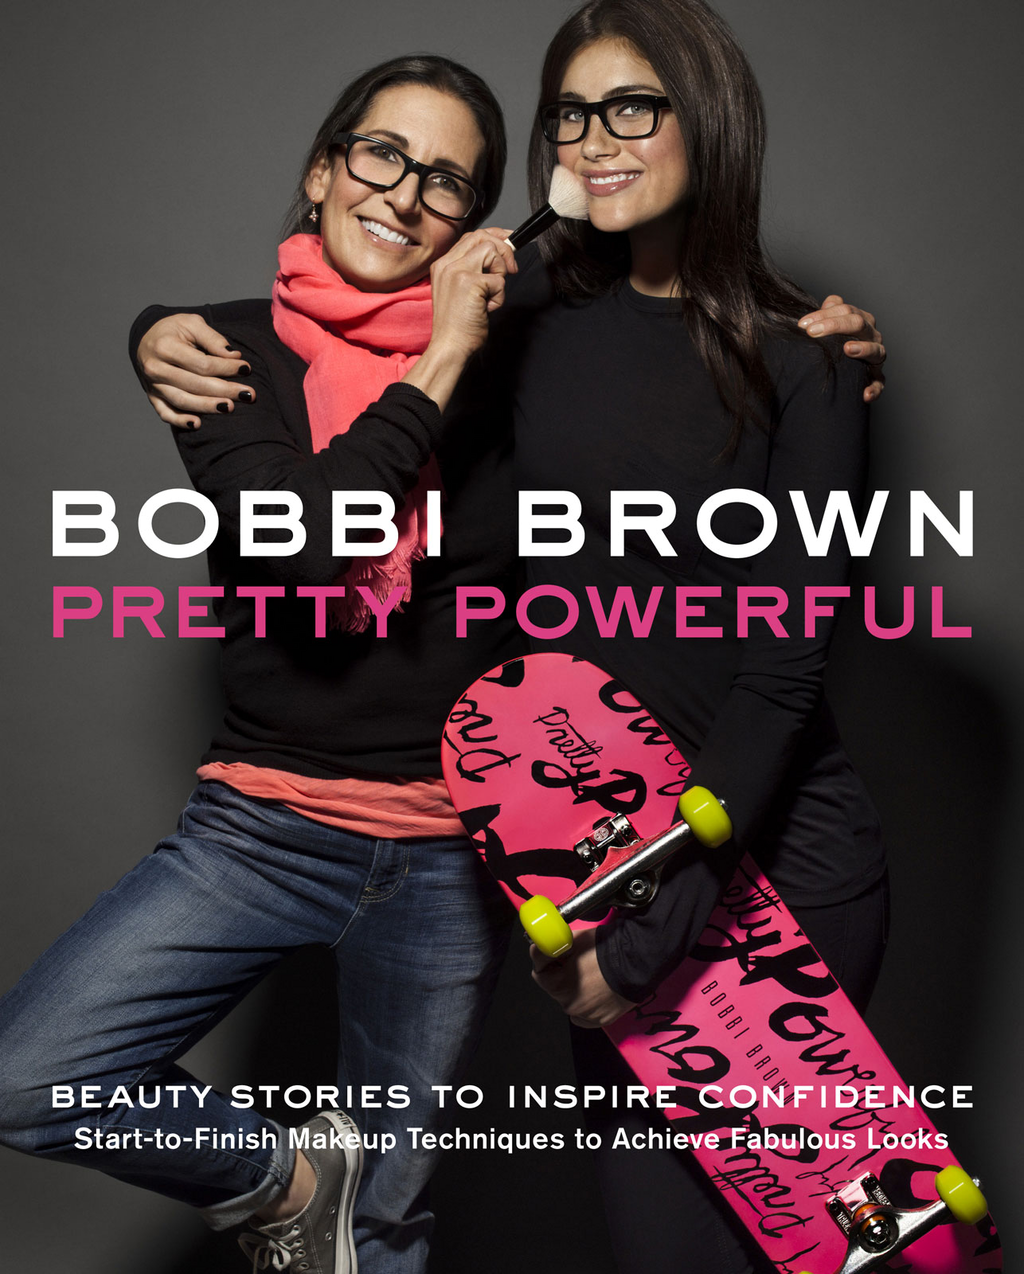 Bobbi Brown Pretty Powerful By: Bobbi Brown